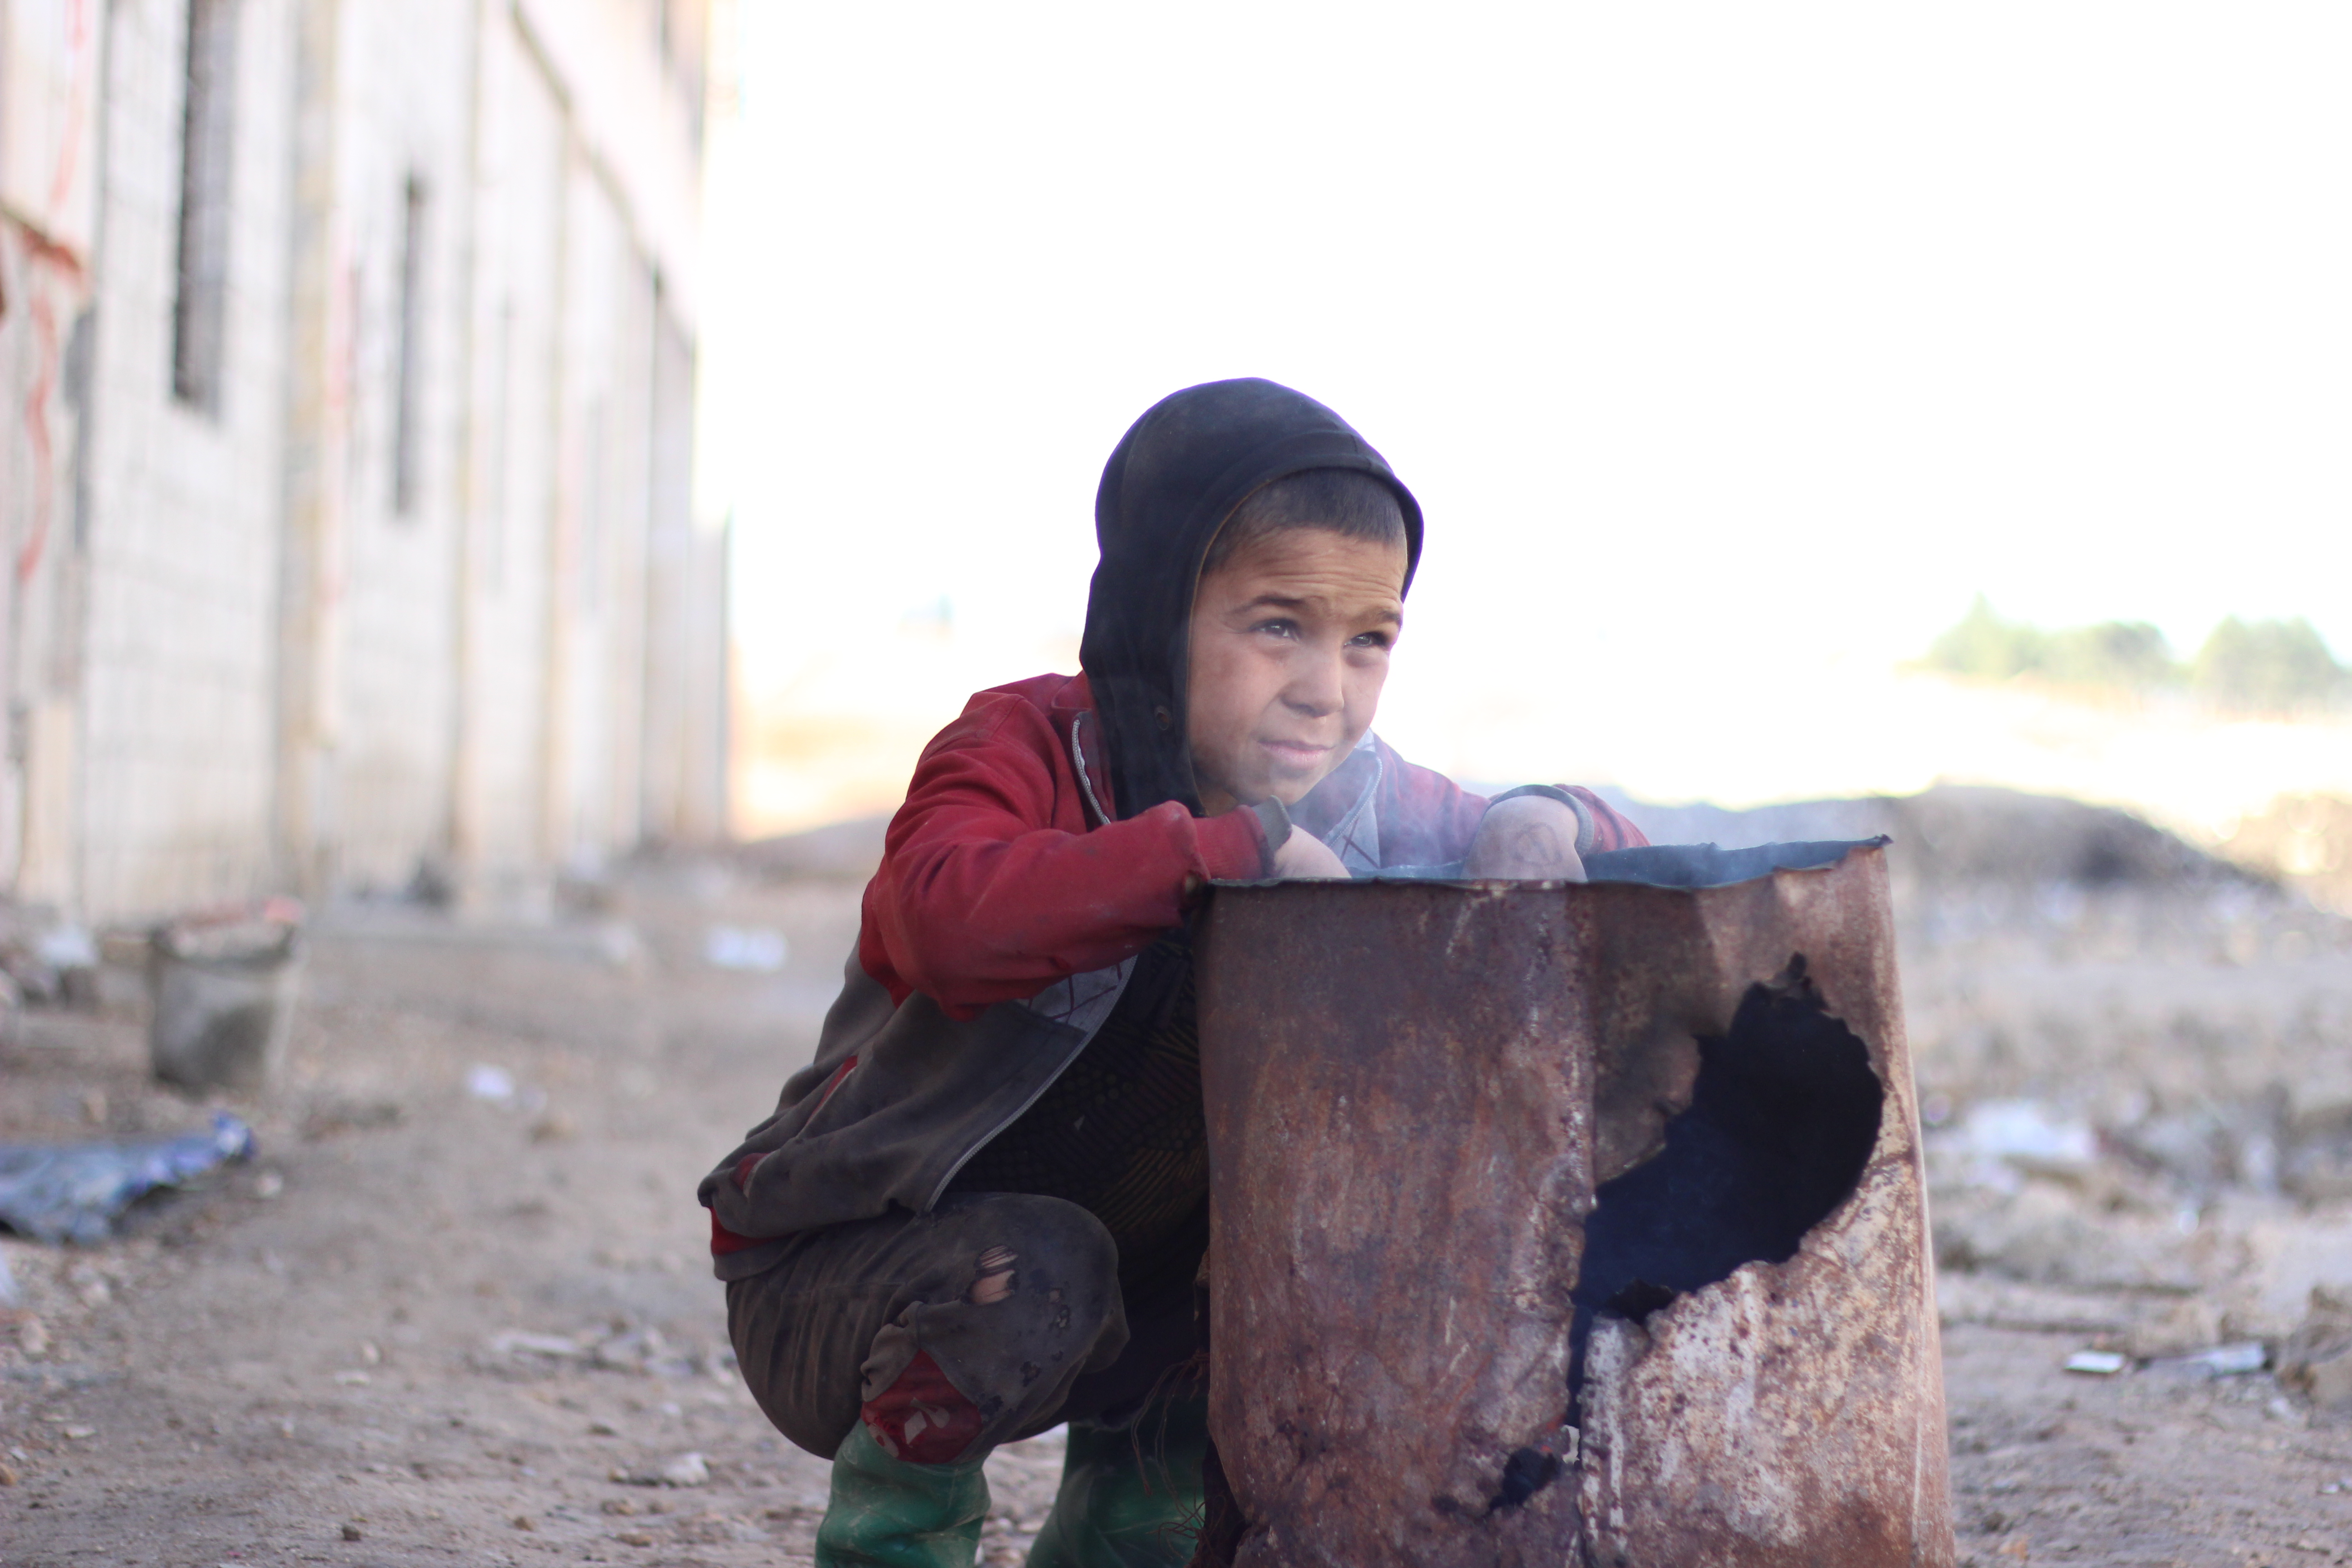 Winter is the latest threat to children in conflict-ridden Aleppo